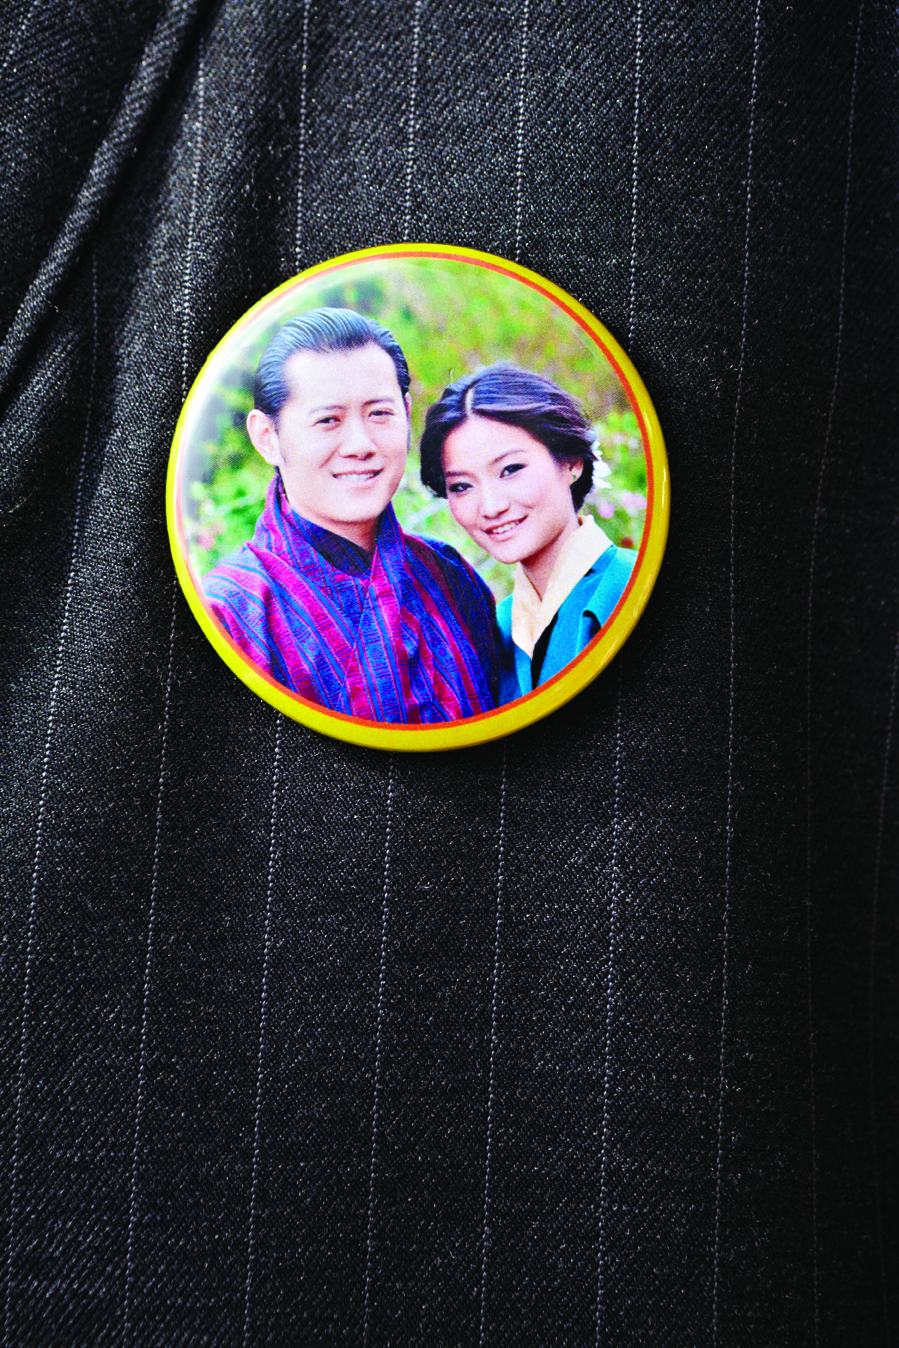 Pictures of the royal couple appear everywhere in Bhutan.